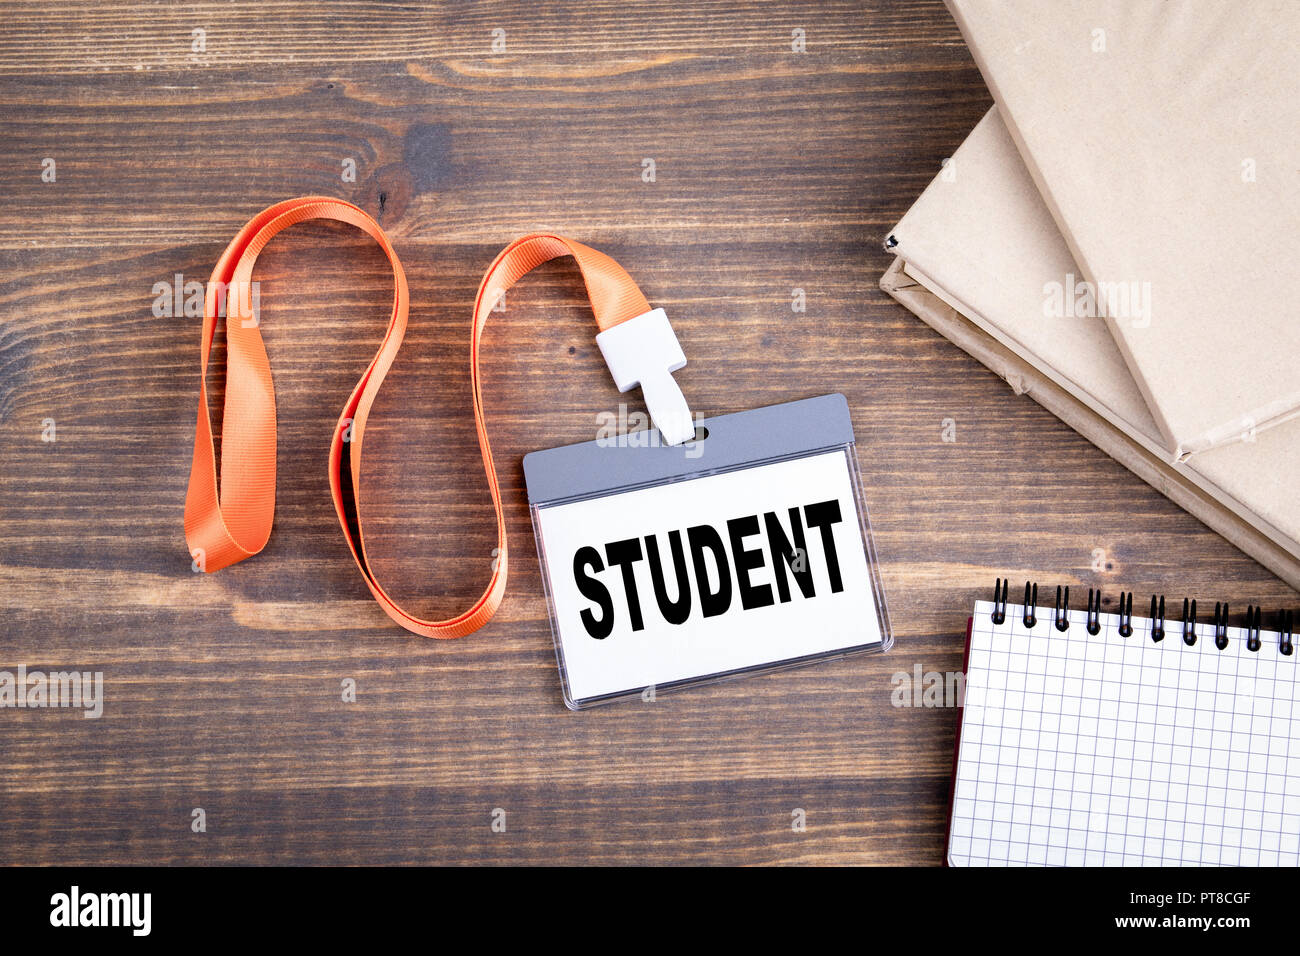 Identification card with text student - Stock Image